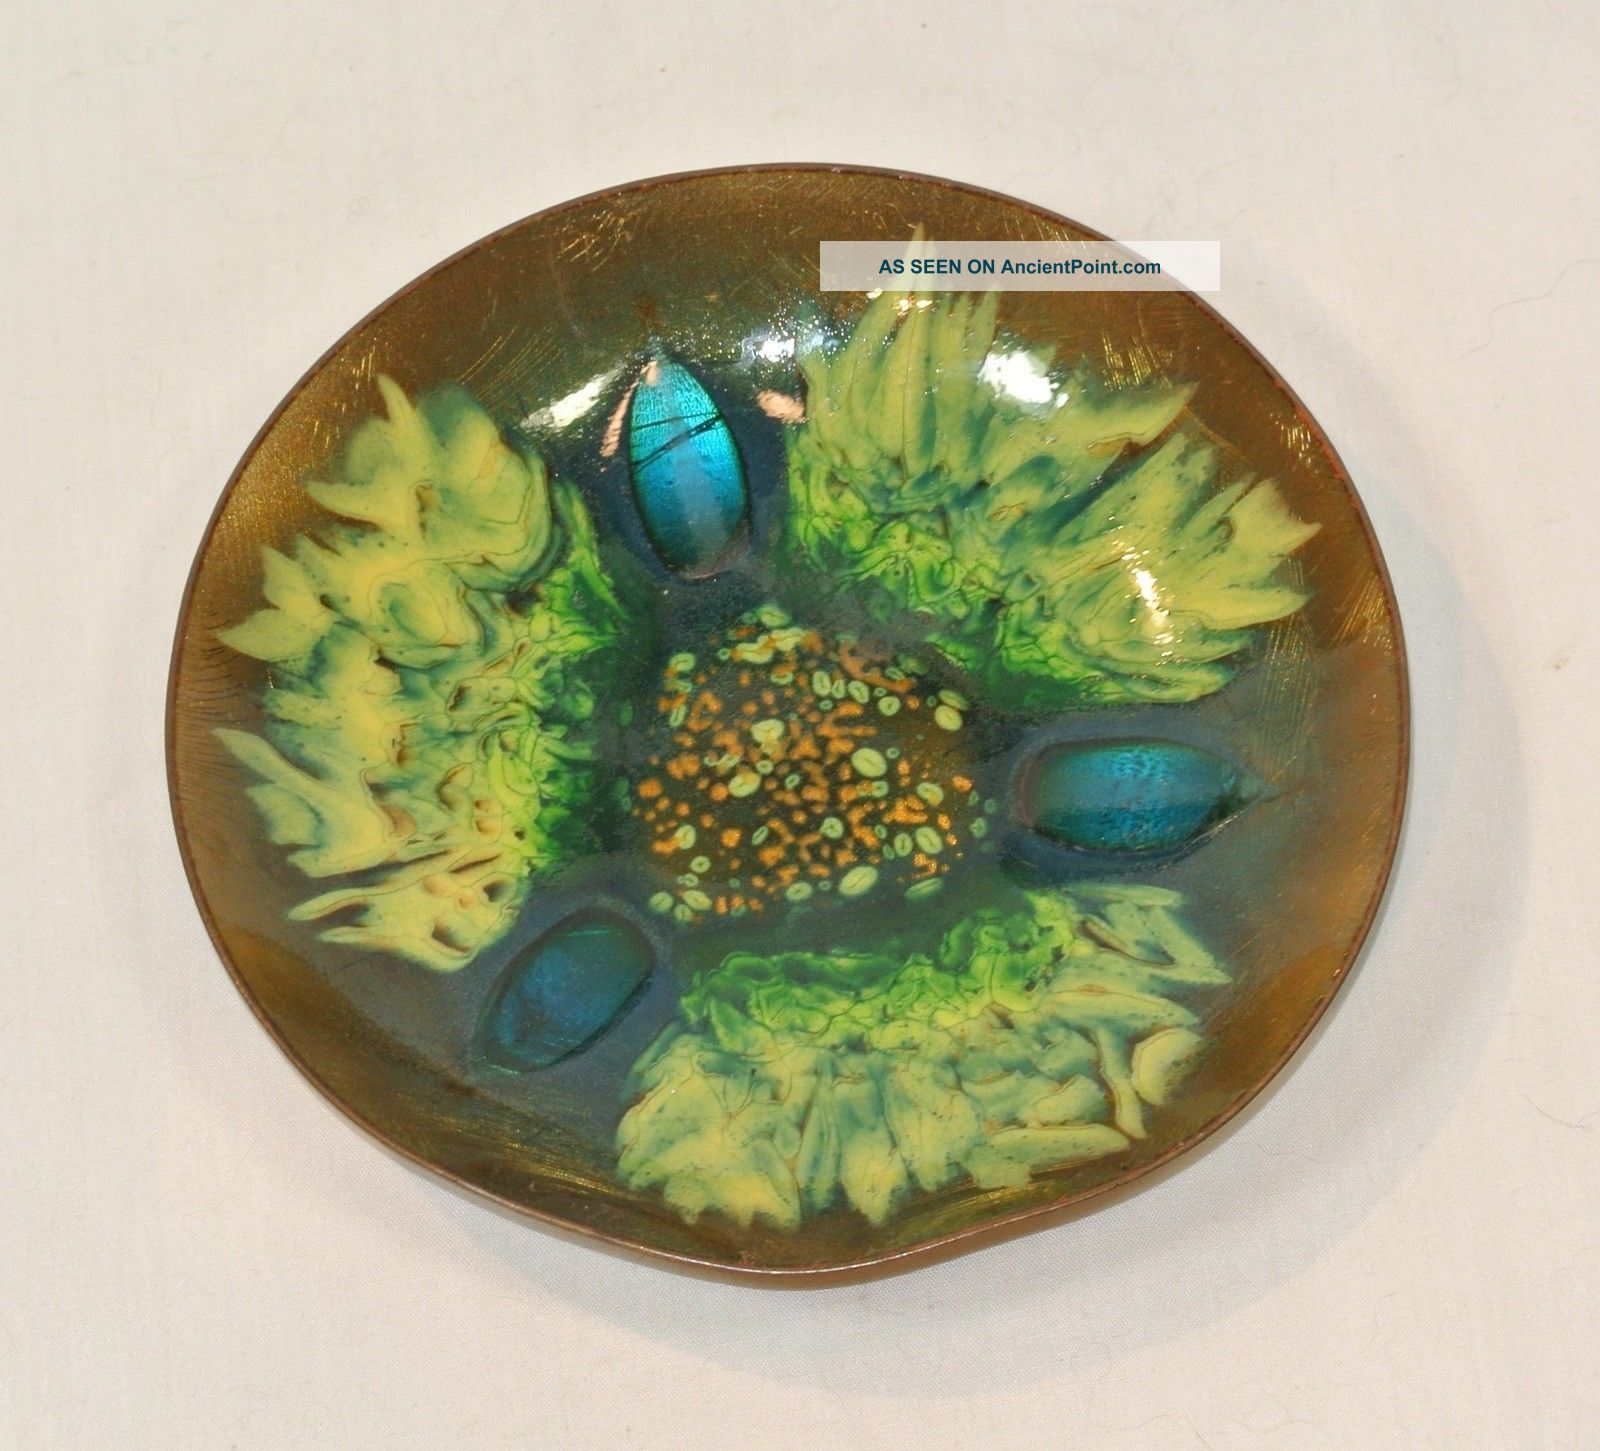 Vintage Edwards Star Enamel On Copper Bowl Green For Gumps San Francisco Mid-Century Modernism photo